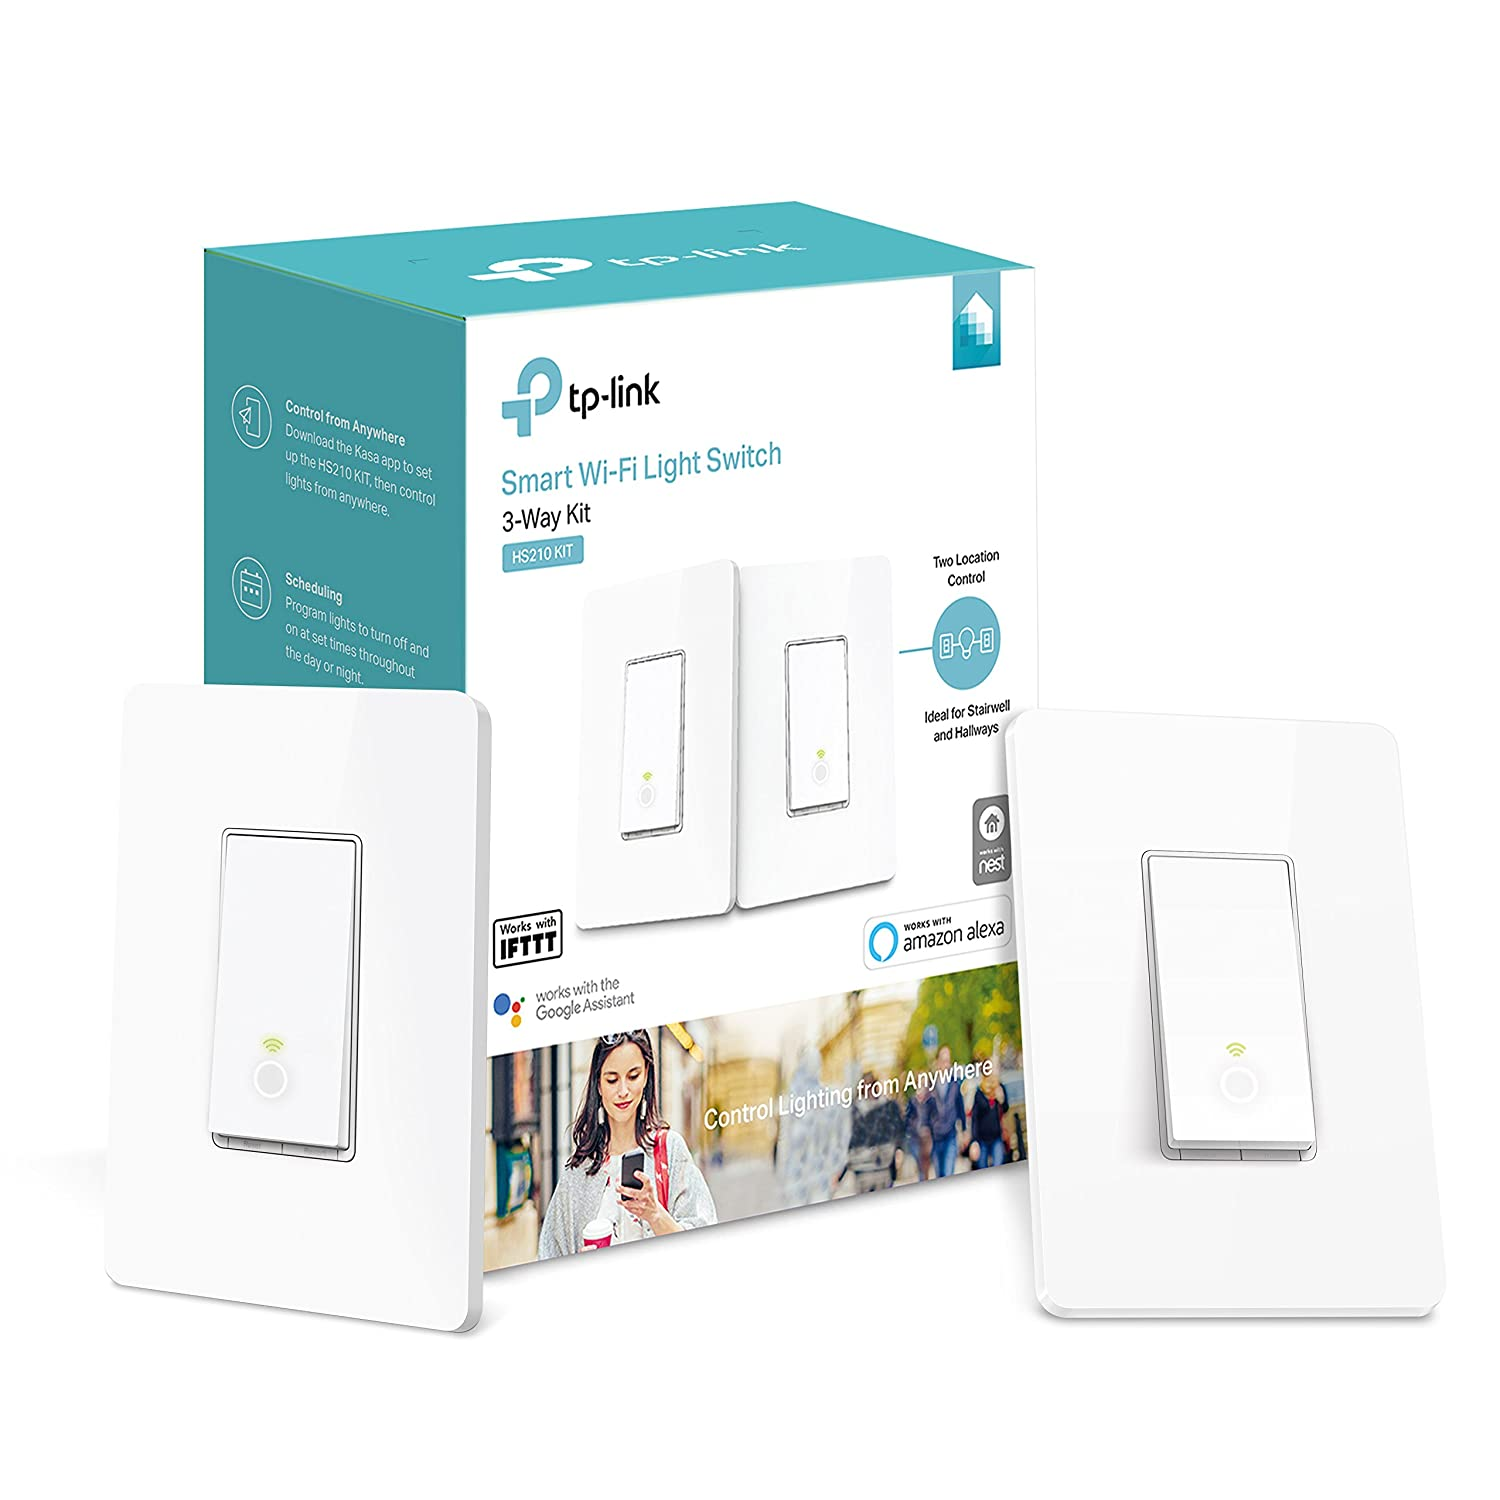 How To Make A Simple Circuit With On Off Switch For Light Bulb Kasa Smart Wi Fi 3 Way Kit By Tp Link Reliable Wifi Connection Includes 2 Switches Control Lighting From Anywhere Easy In Wall